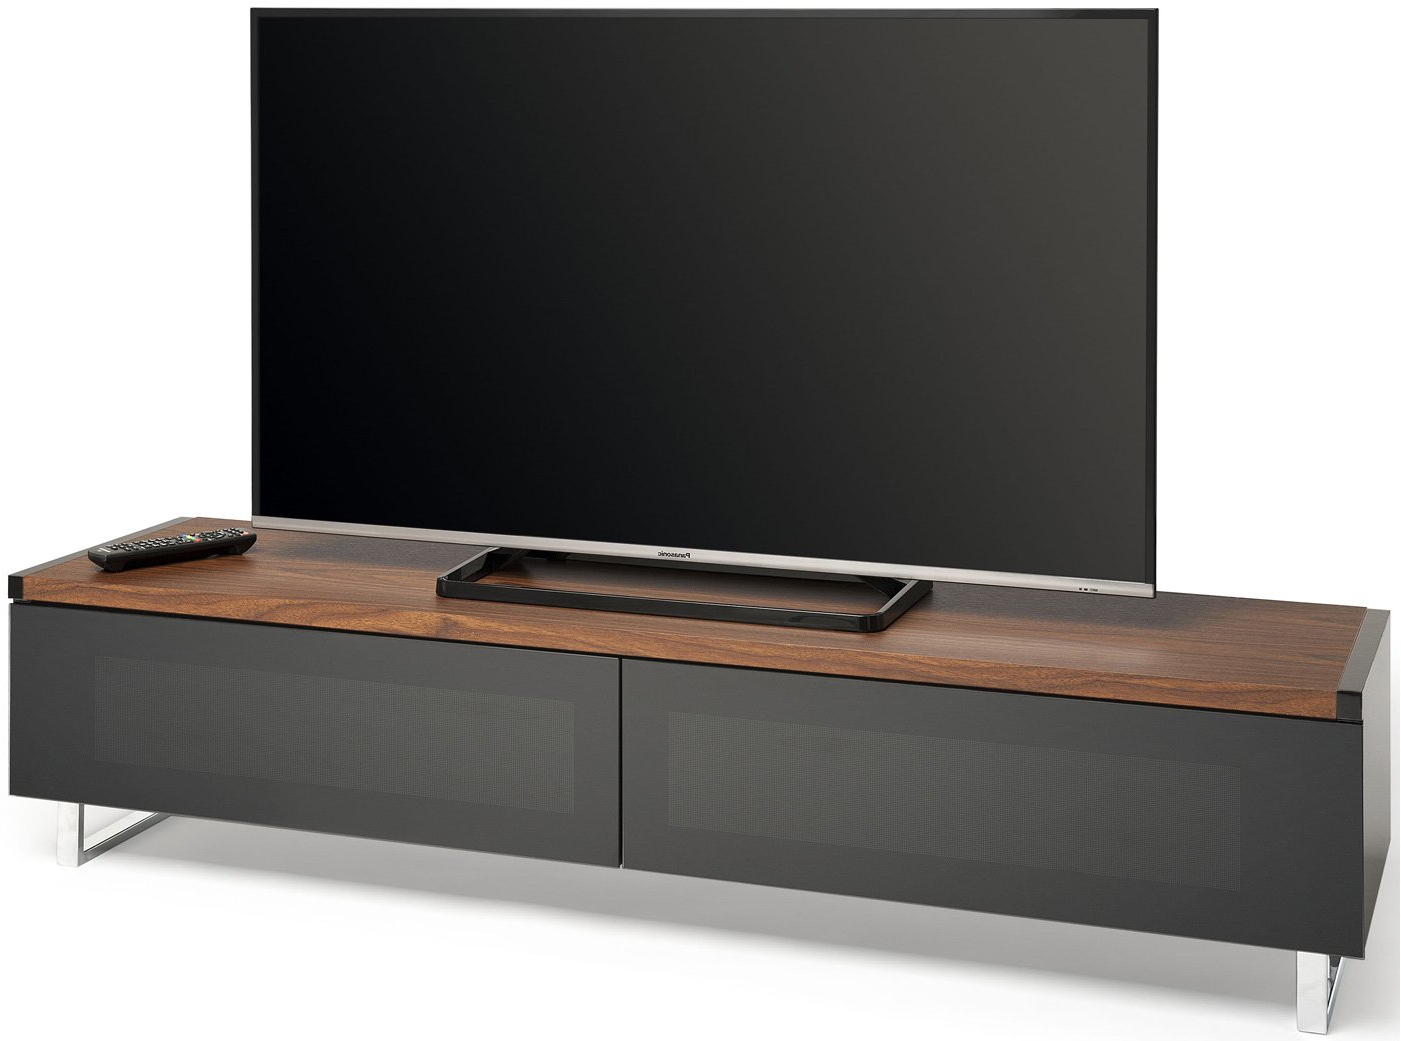 Widely Used Techlink Panorama Walnut Tv Stands In Techlink Pm160Wb Walnut Tv Stands (Gallery 8 of 20)